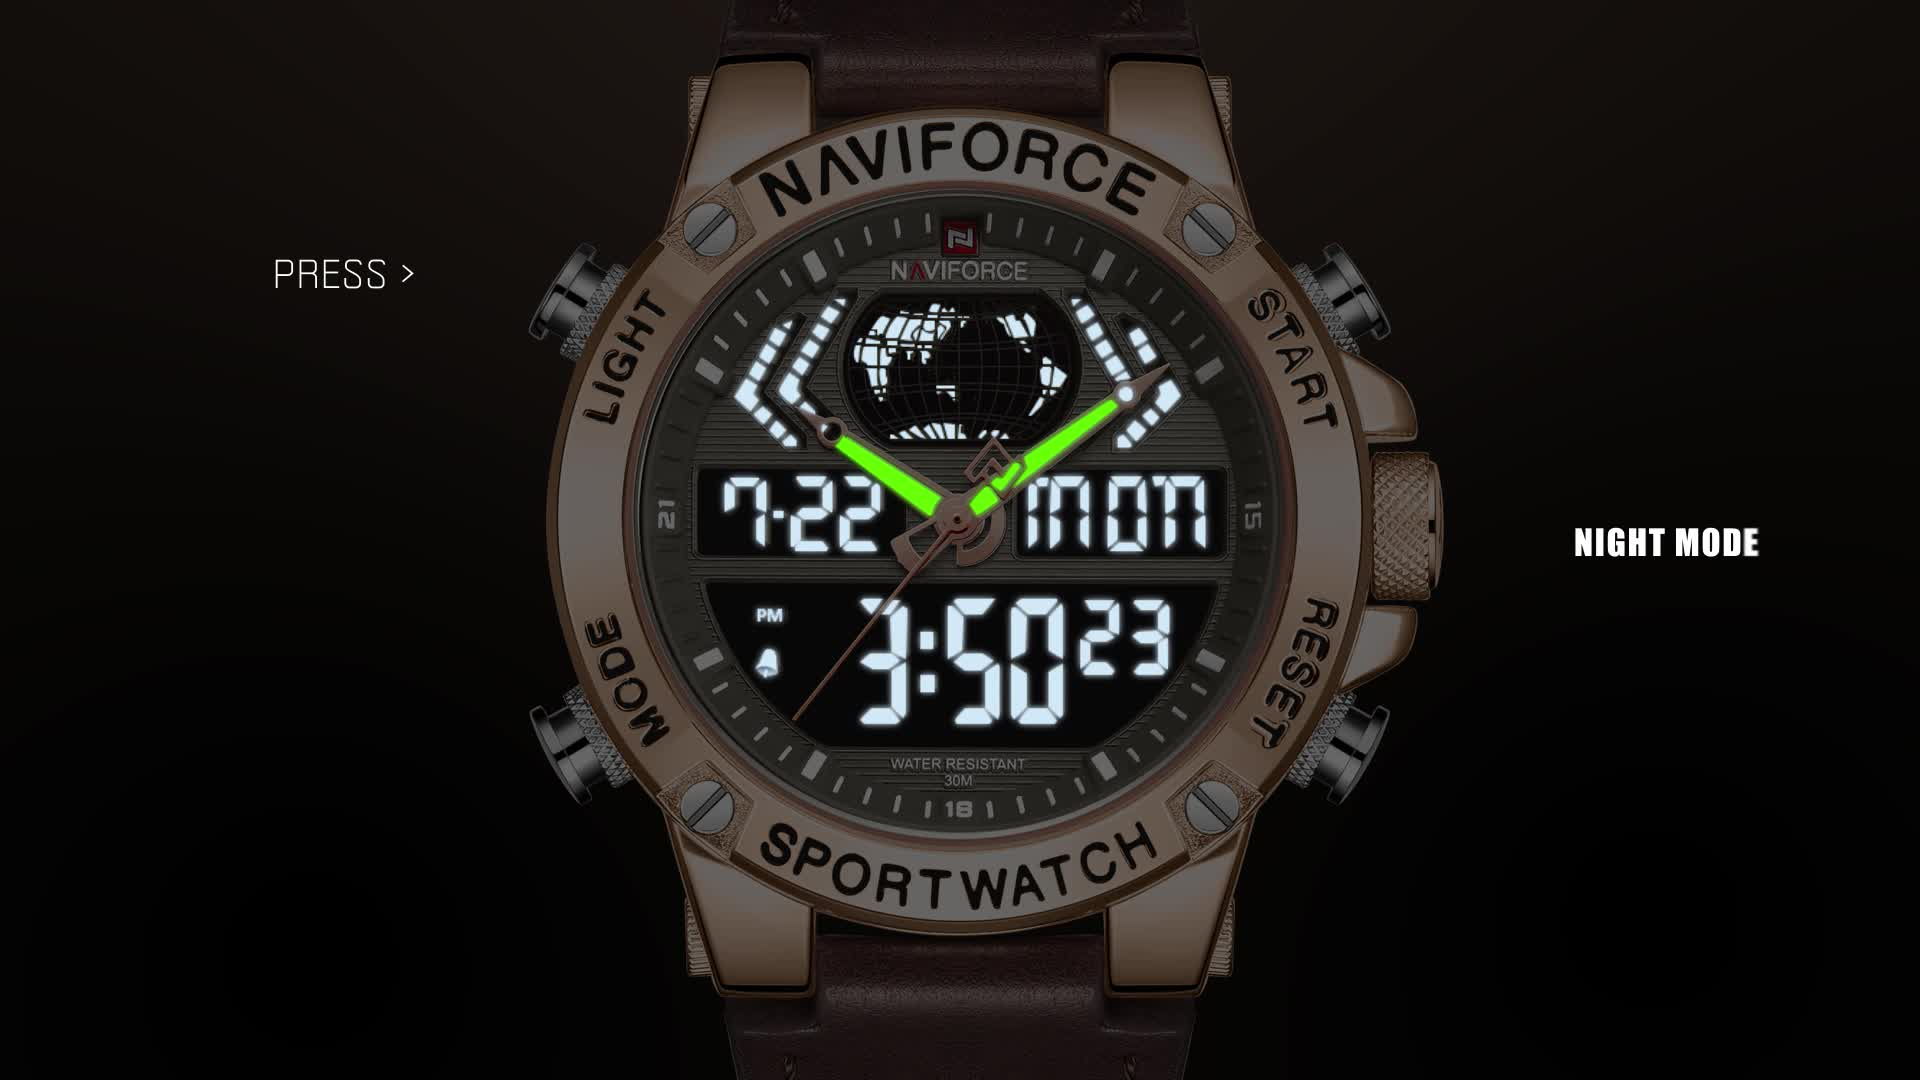 relogio masculino luxury naviforce 9164 relojes hombre Digital mens watches in wristwatches 2019 hot sale  relojes